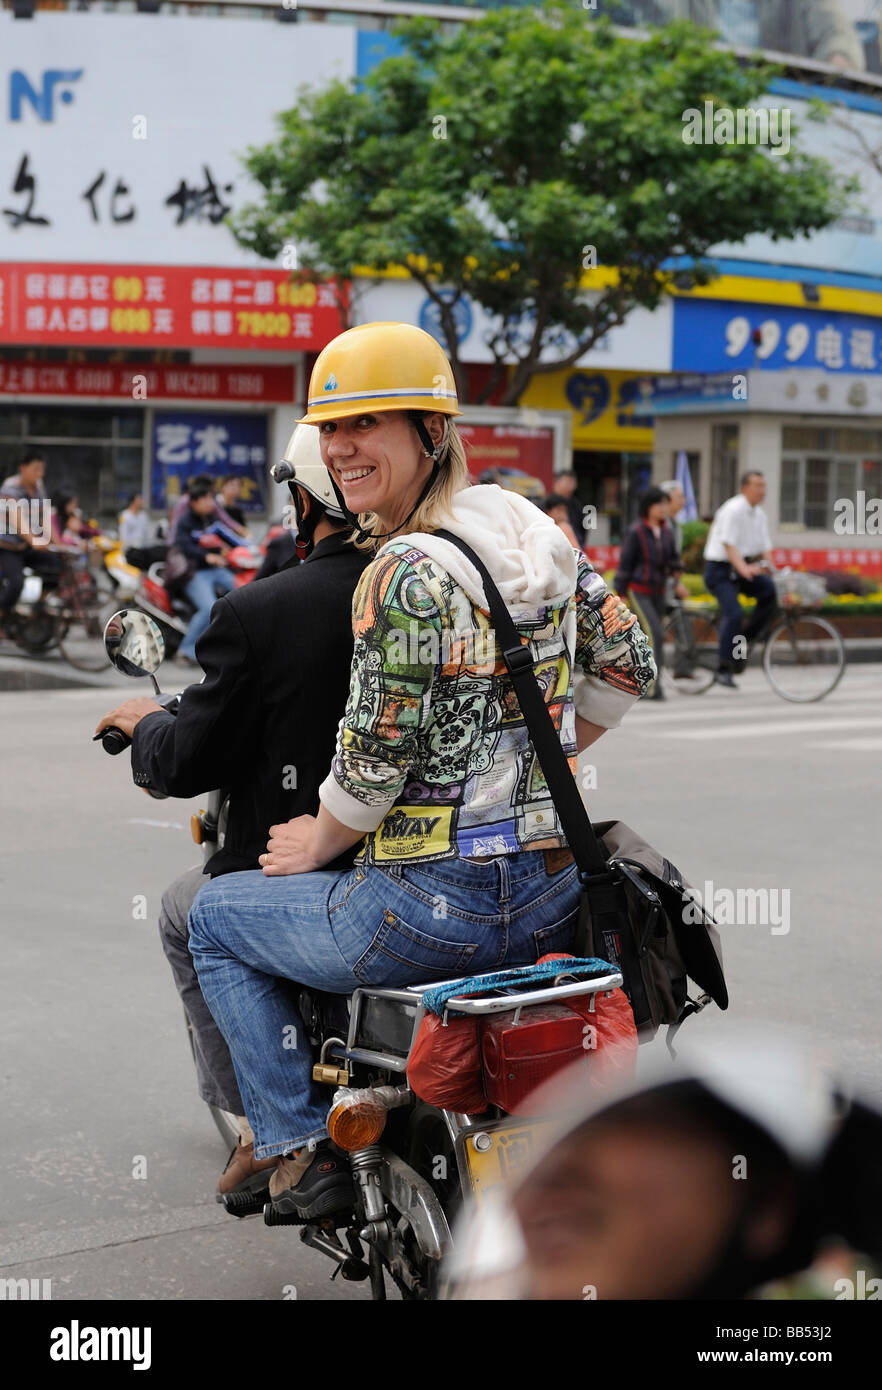 Dutch lady on a motorcycle while travelling in Quanzhou, Fujian, China. 14-Apr-2009 - Stock Image